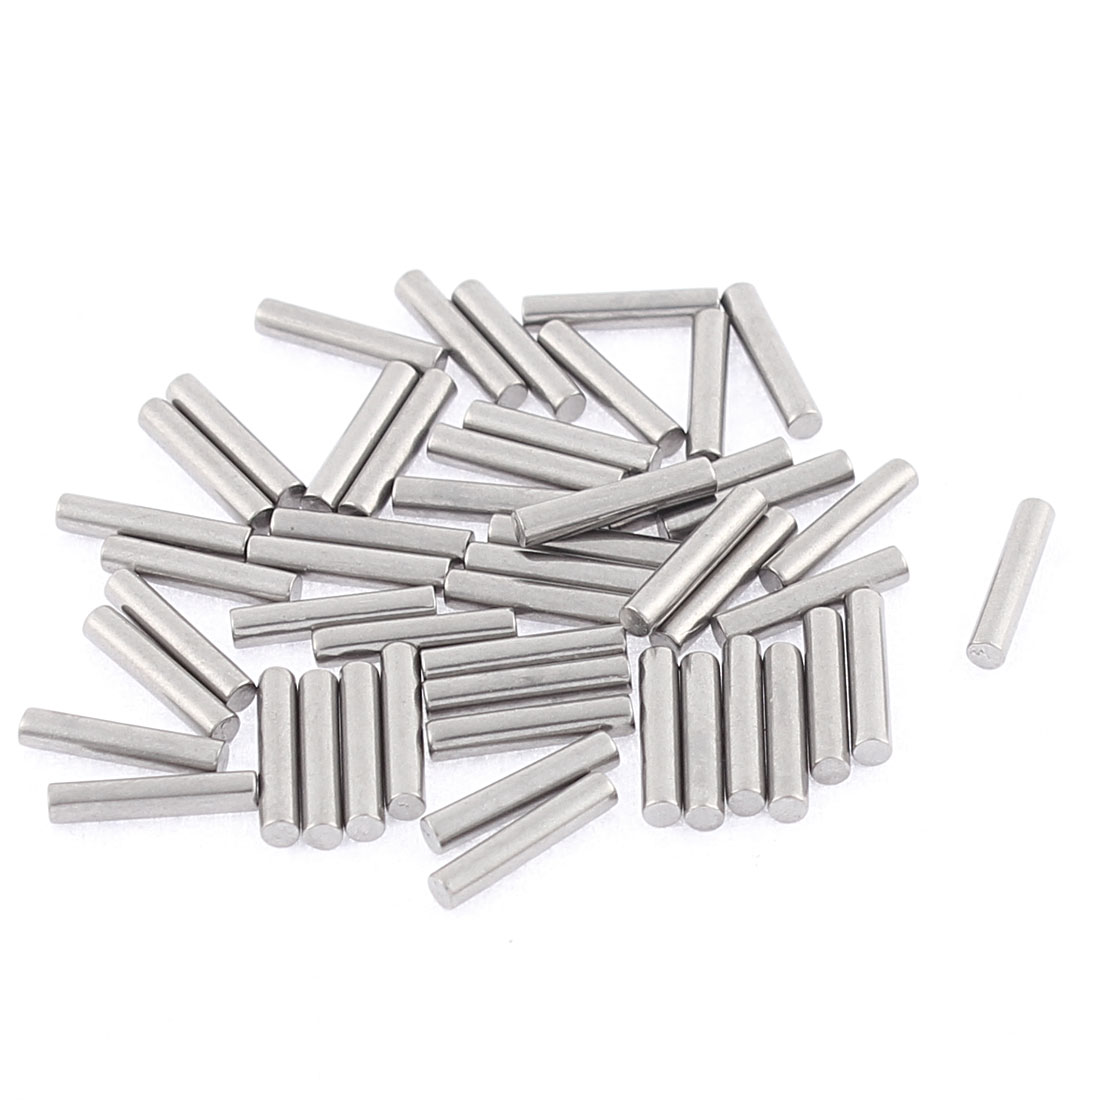 M2x10mm Stainless Steel Straight Retaining Dowel Pins Rod Fasten Elements 50 Pcs